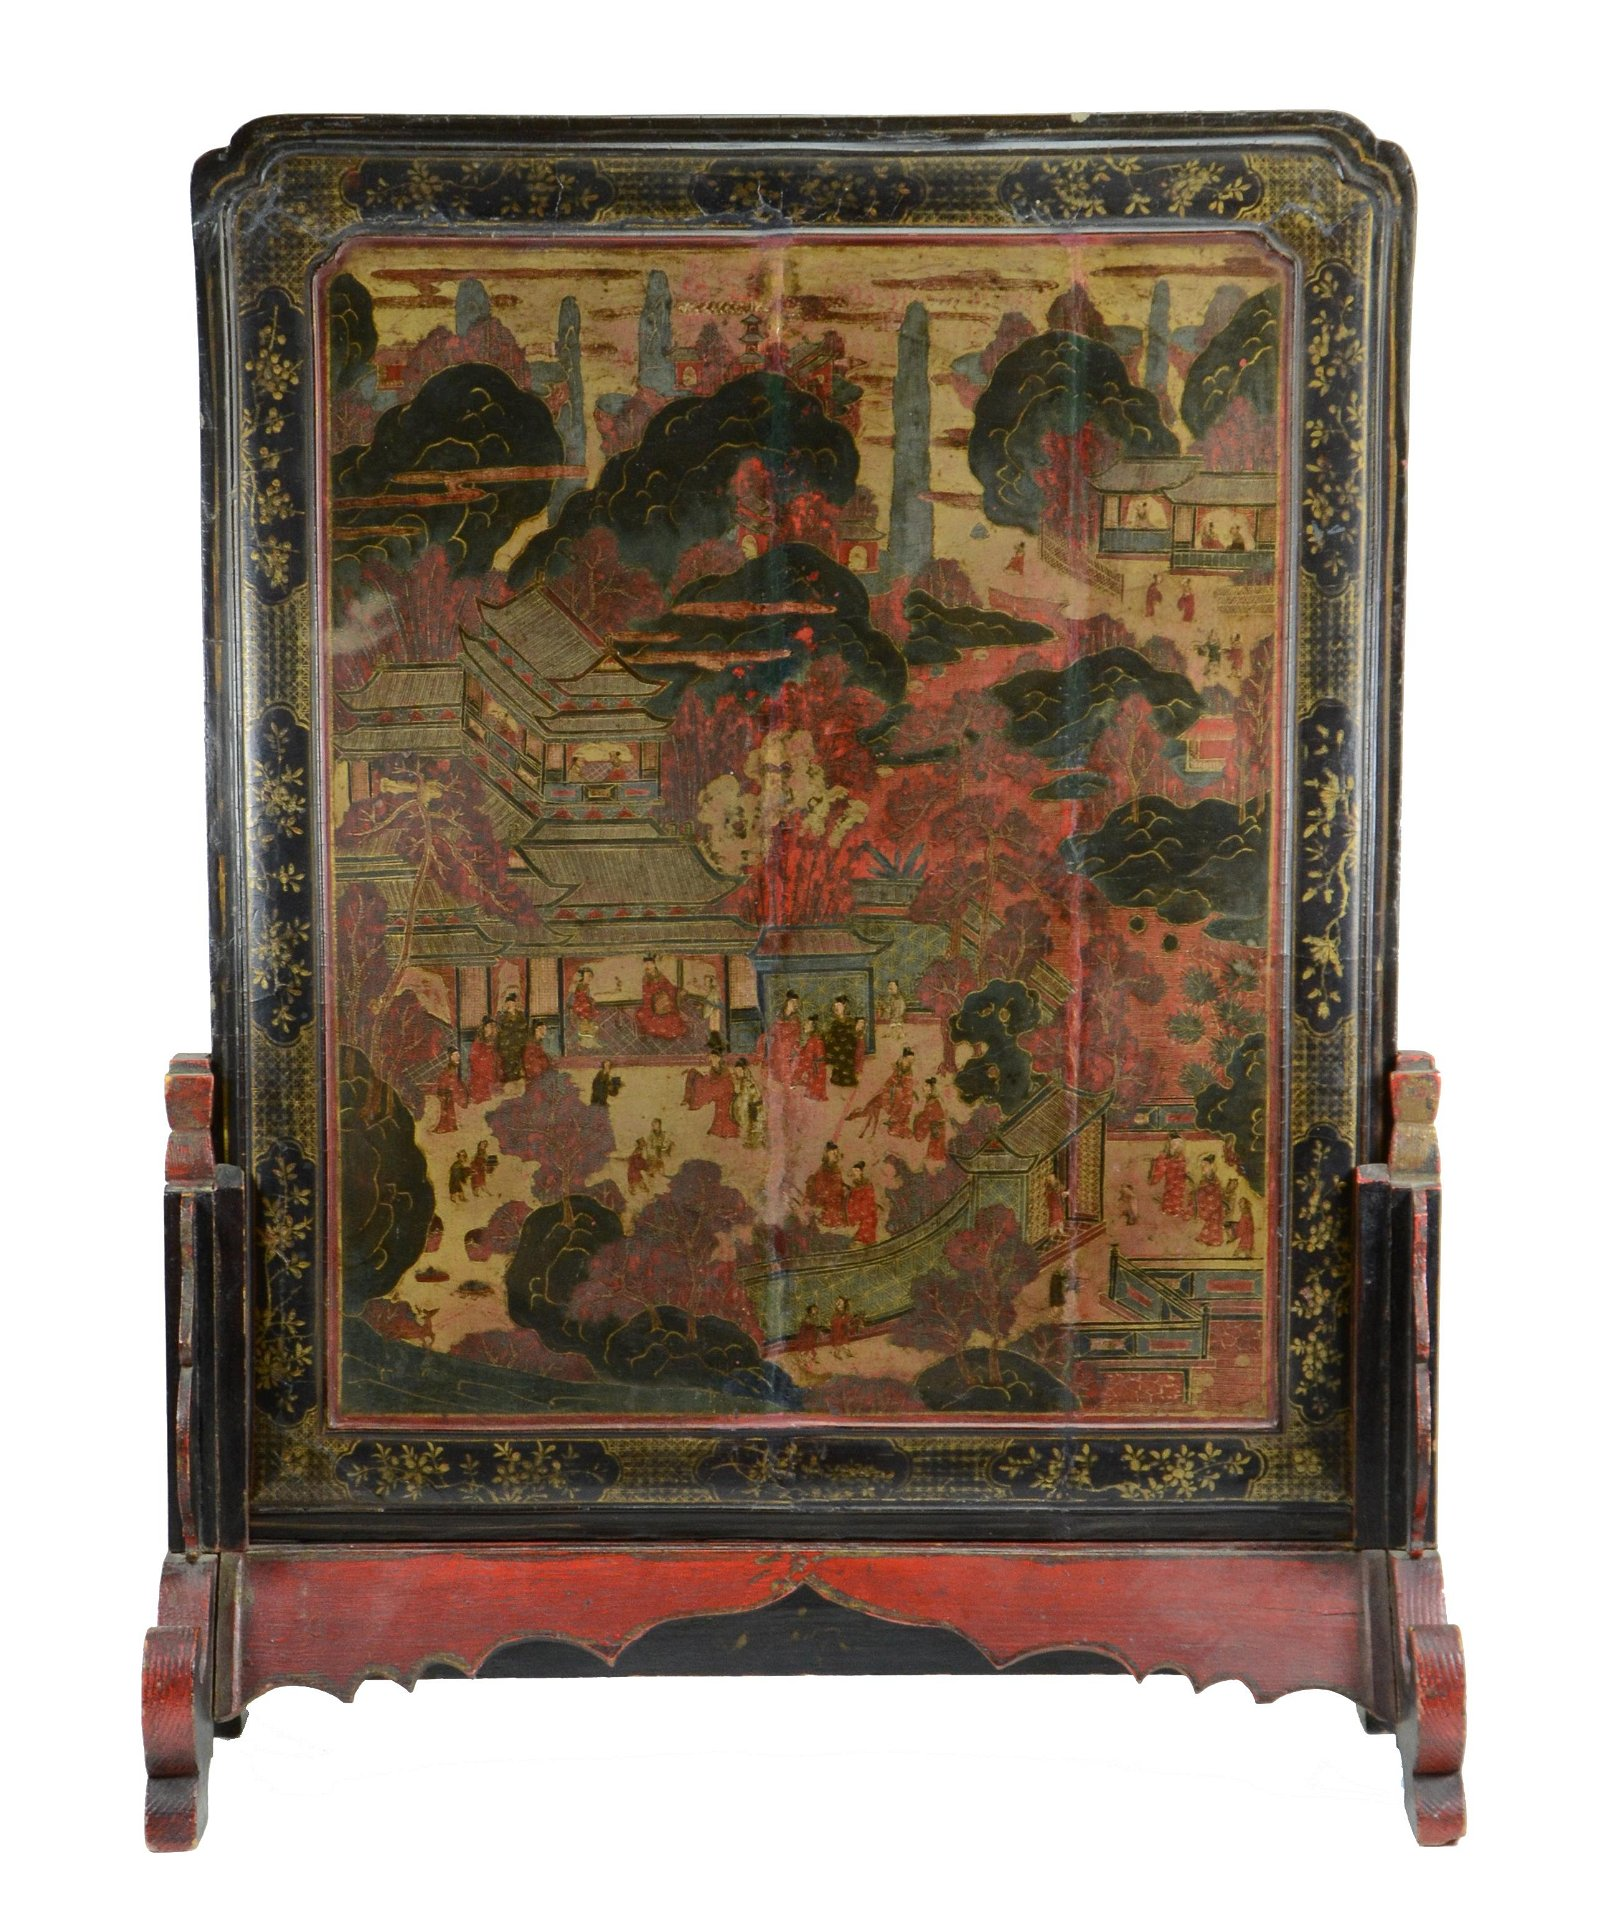 17/18TH C. CHINESE LACQUER SCHOLAR'S TABLE SCREEN